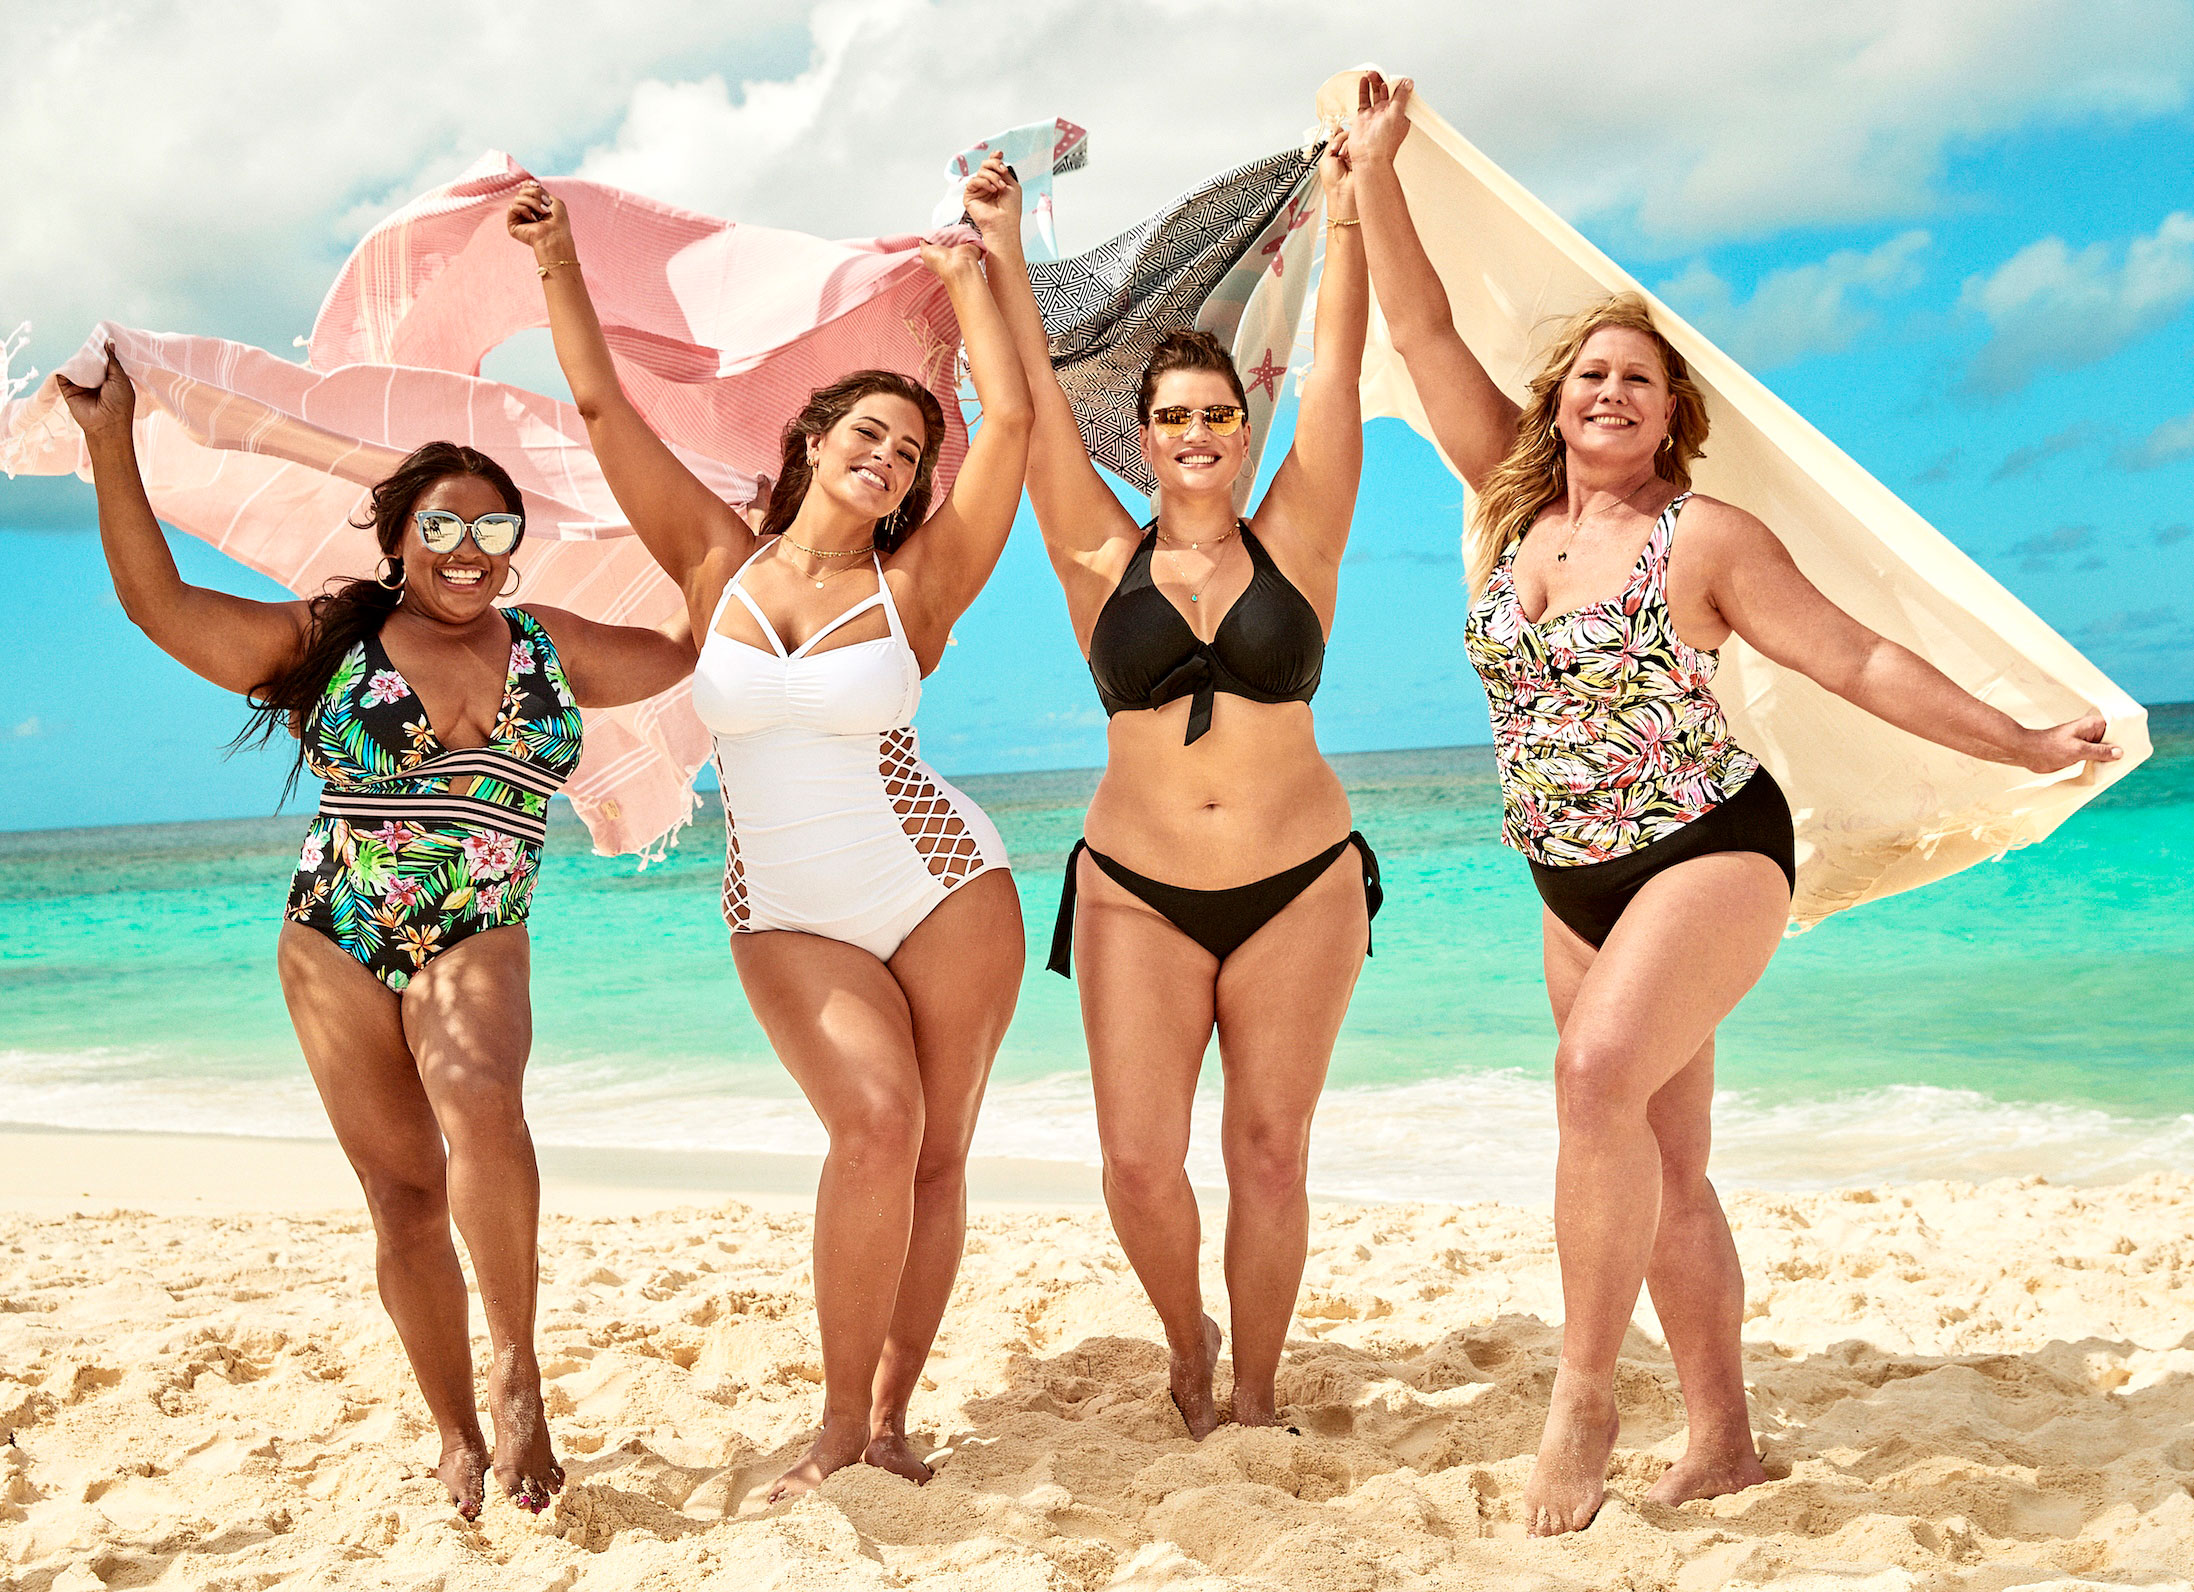 Ashley Graham Sherri Shepherd Lead Body-Positive Swim Campaign - At 36, Lynn, second from right, was the oldest Sports Illustrated Swimsuit rookie to date in the iconic magazine's 2019 edition.